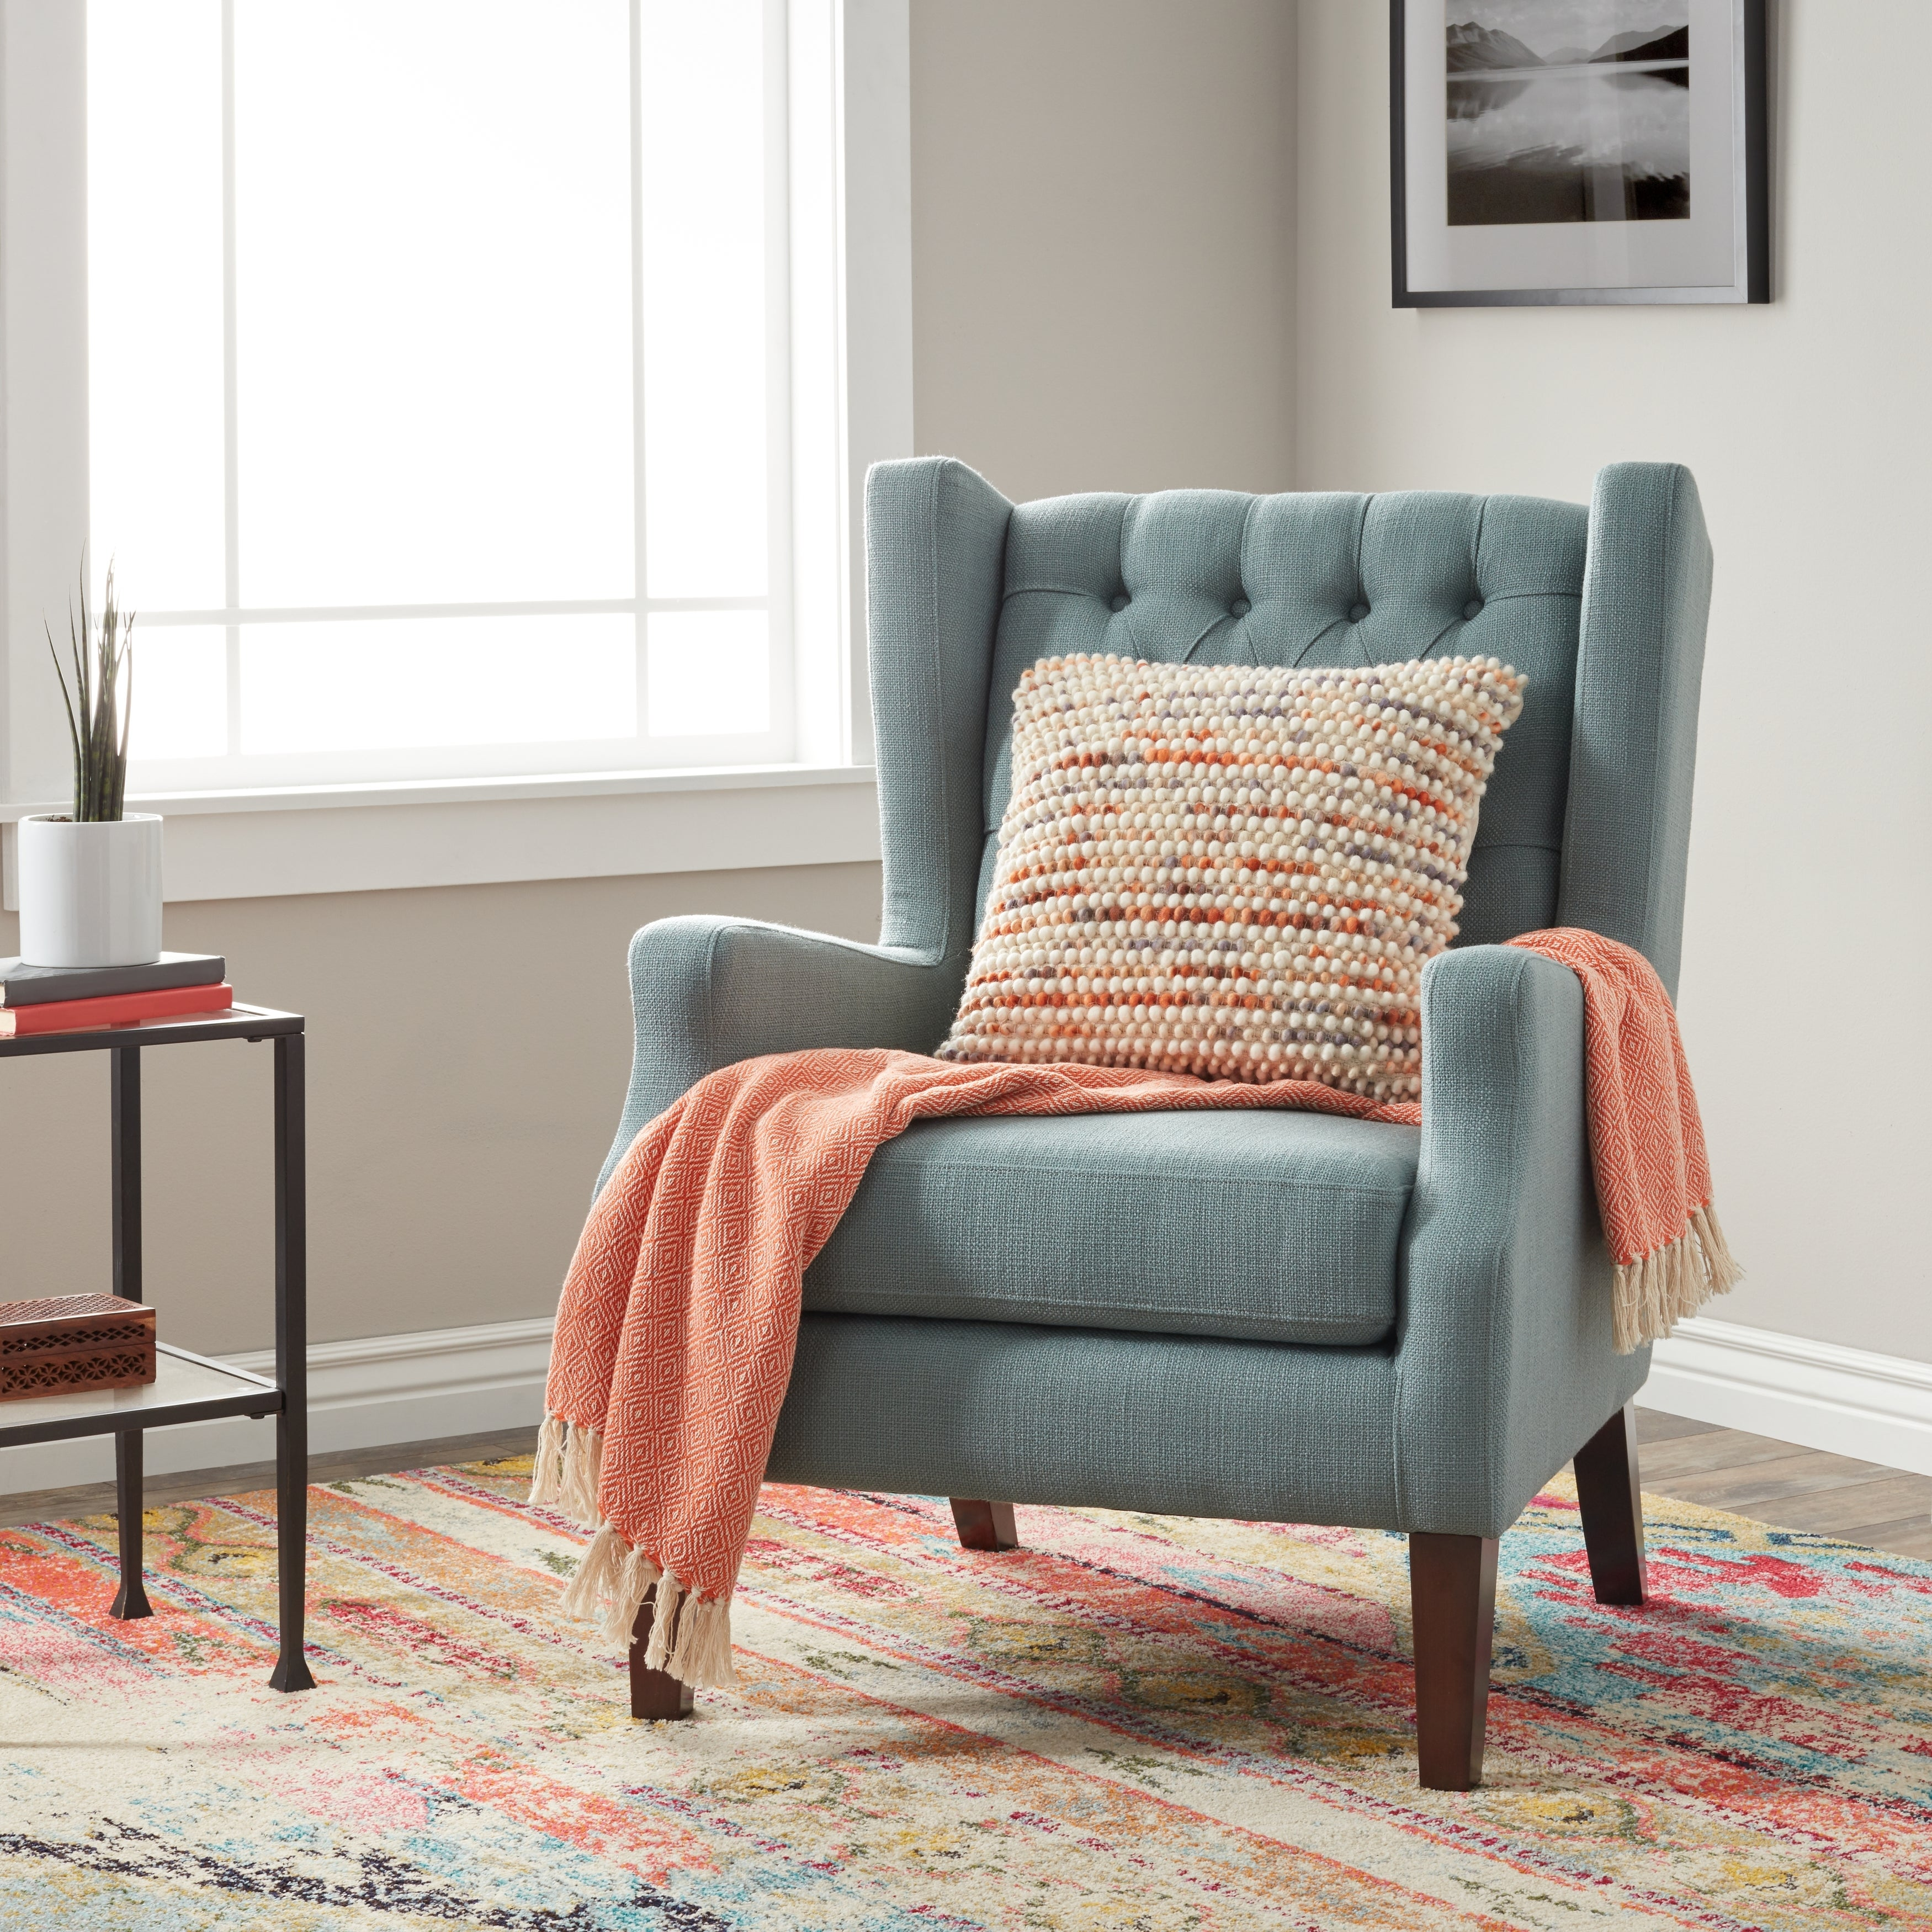 Superbe Clearance. Stones U0026 Stripes Maxwell Lillian Wing Chair